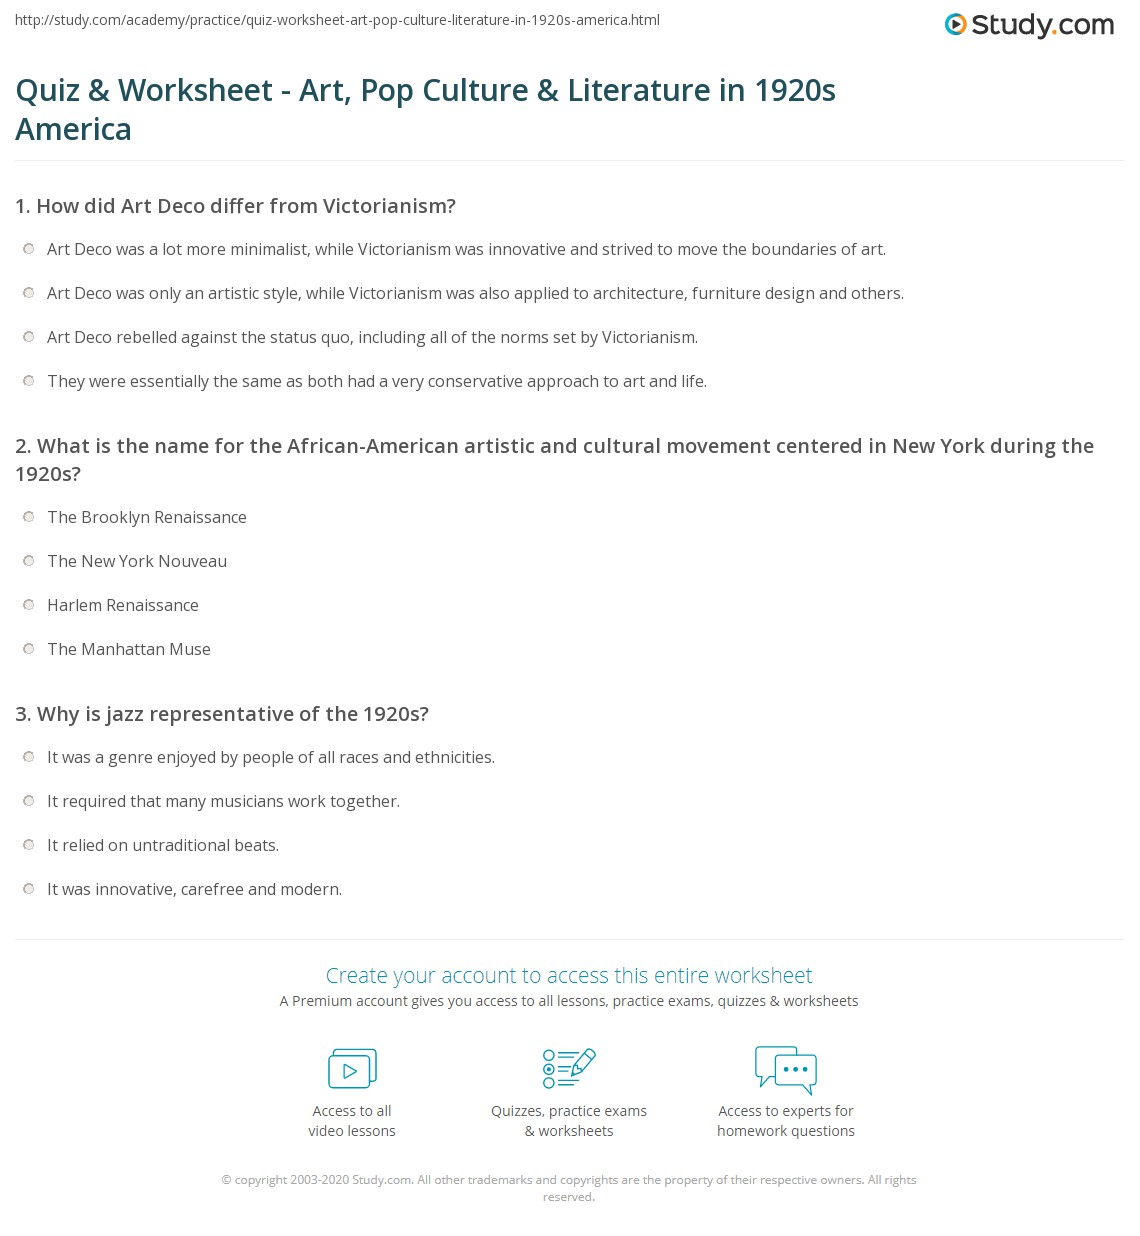 quiz worksheet art pop culture literature in 1920s america. Black Bedroom Furniture Sets. Home Design Ideas